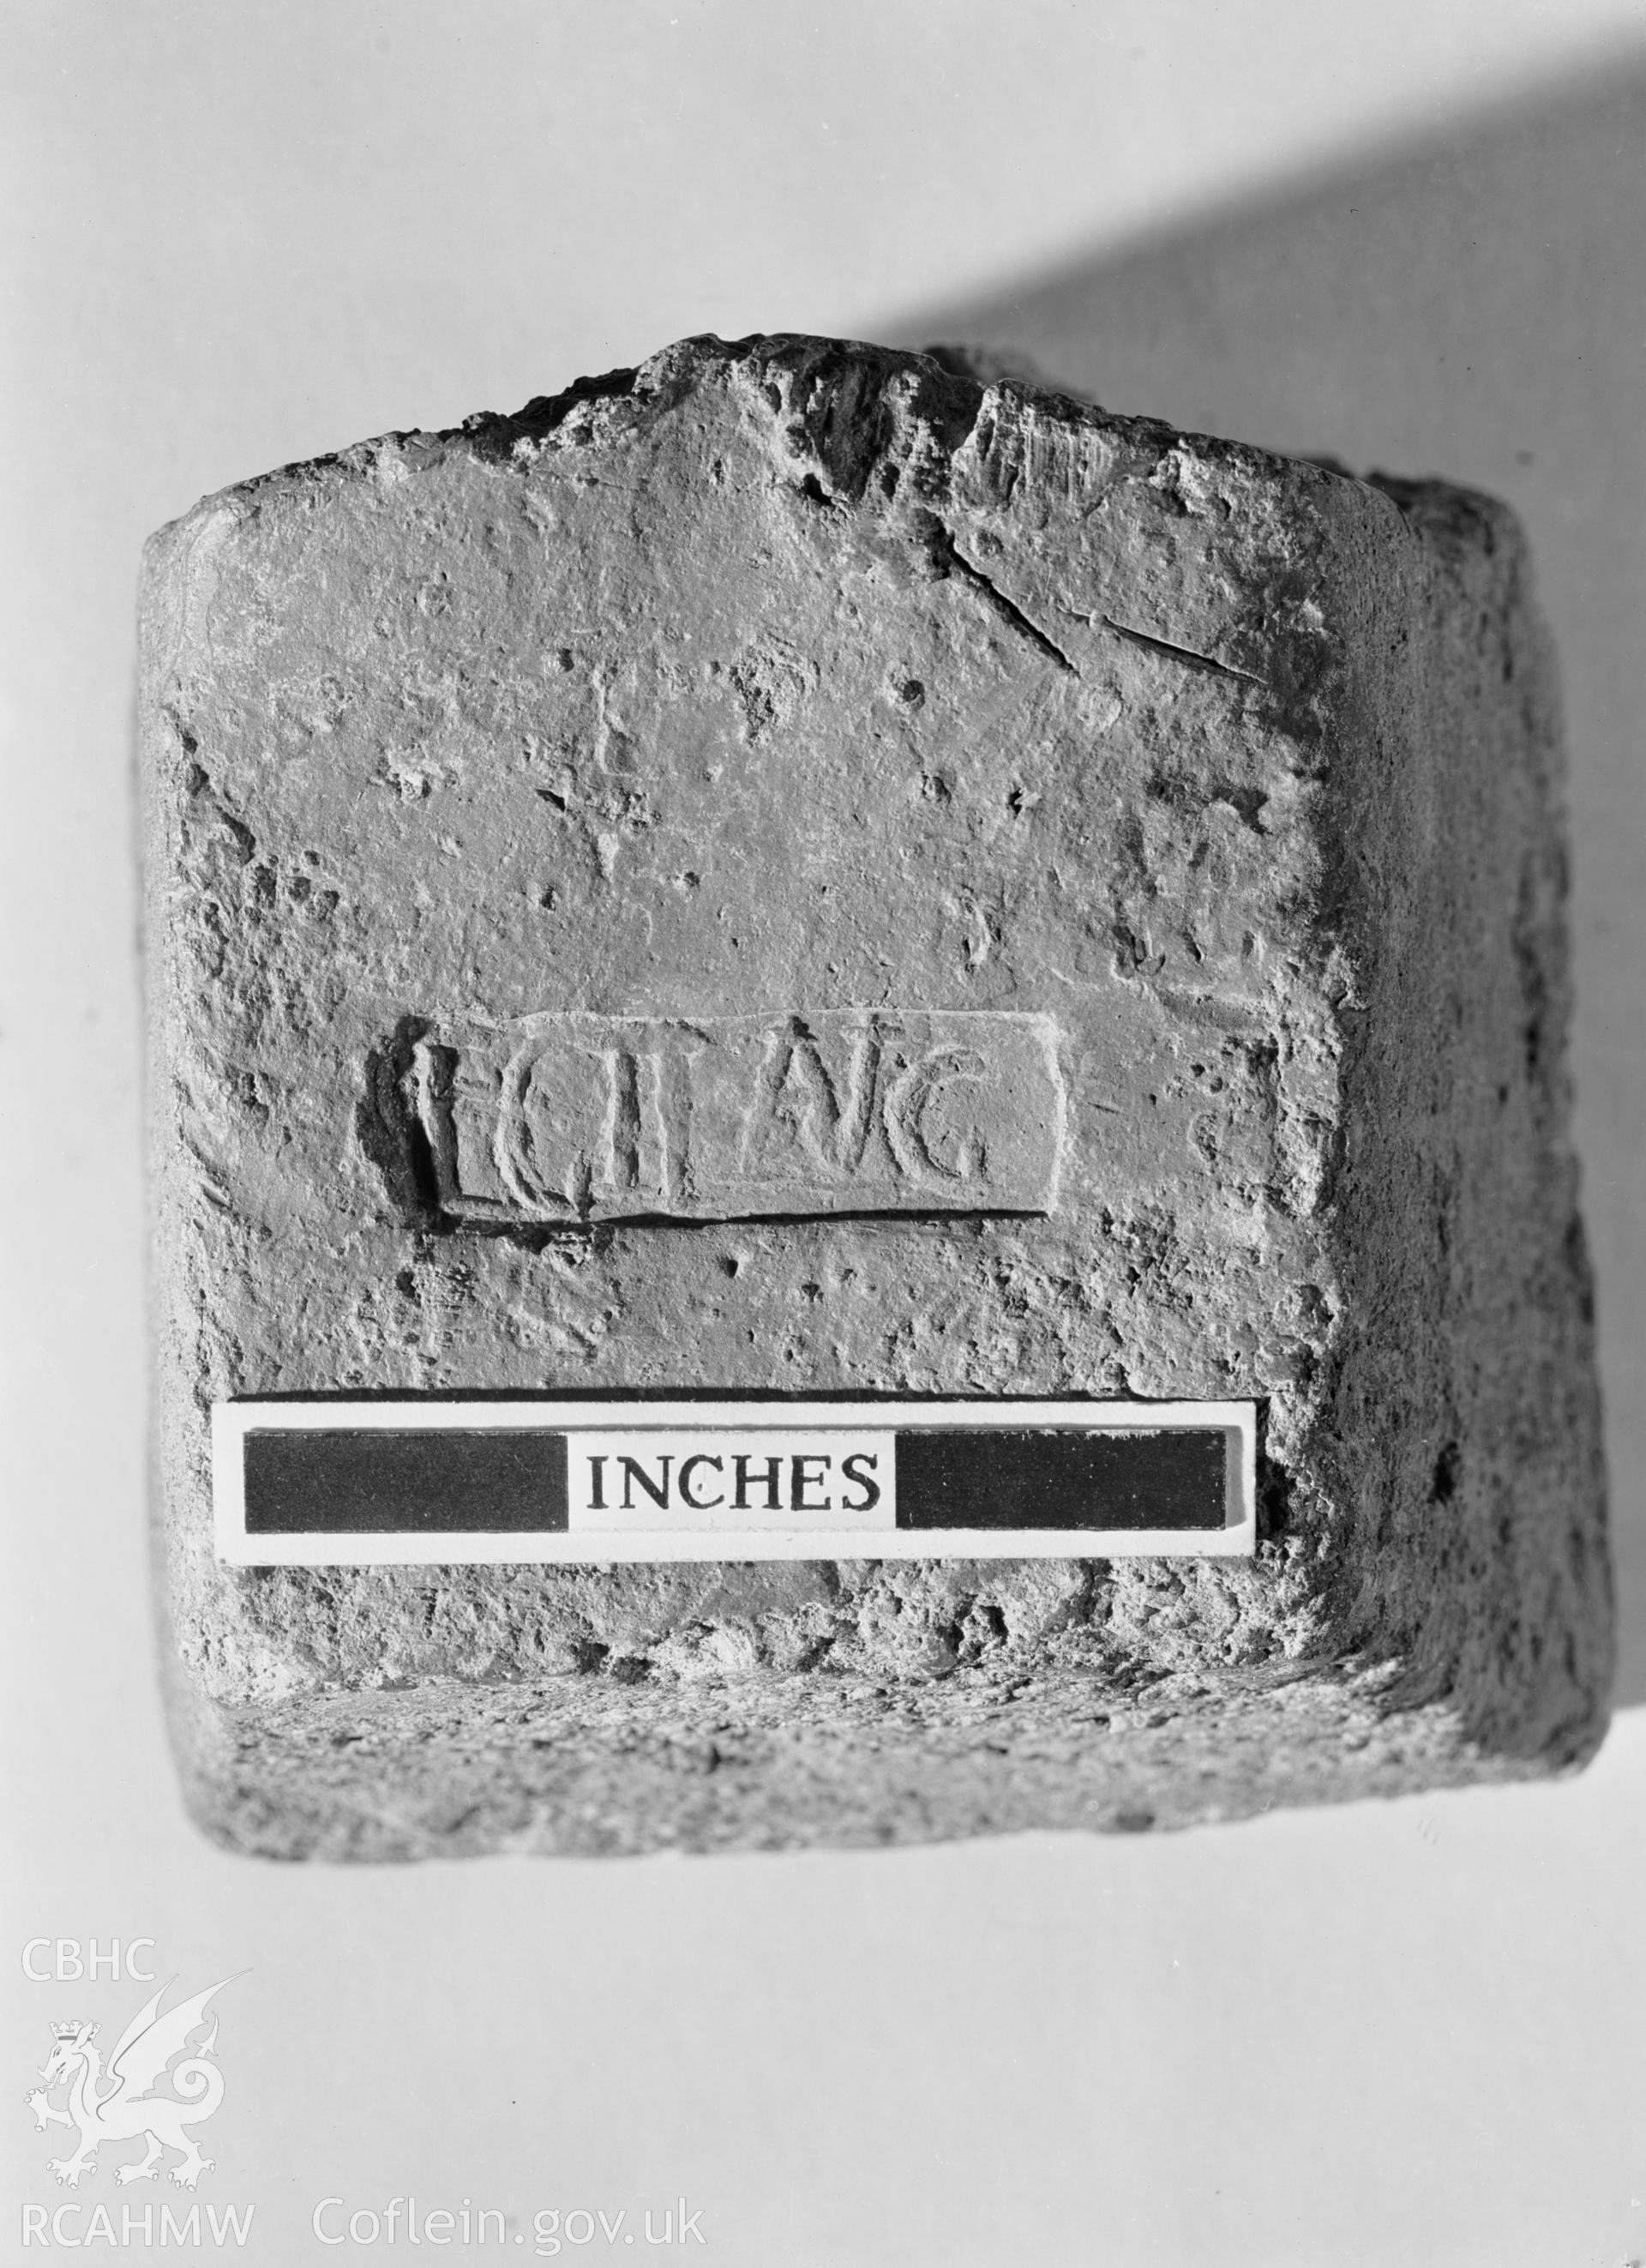 D.O.E photographs of Caerleon. Lead ingot of Leg II.